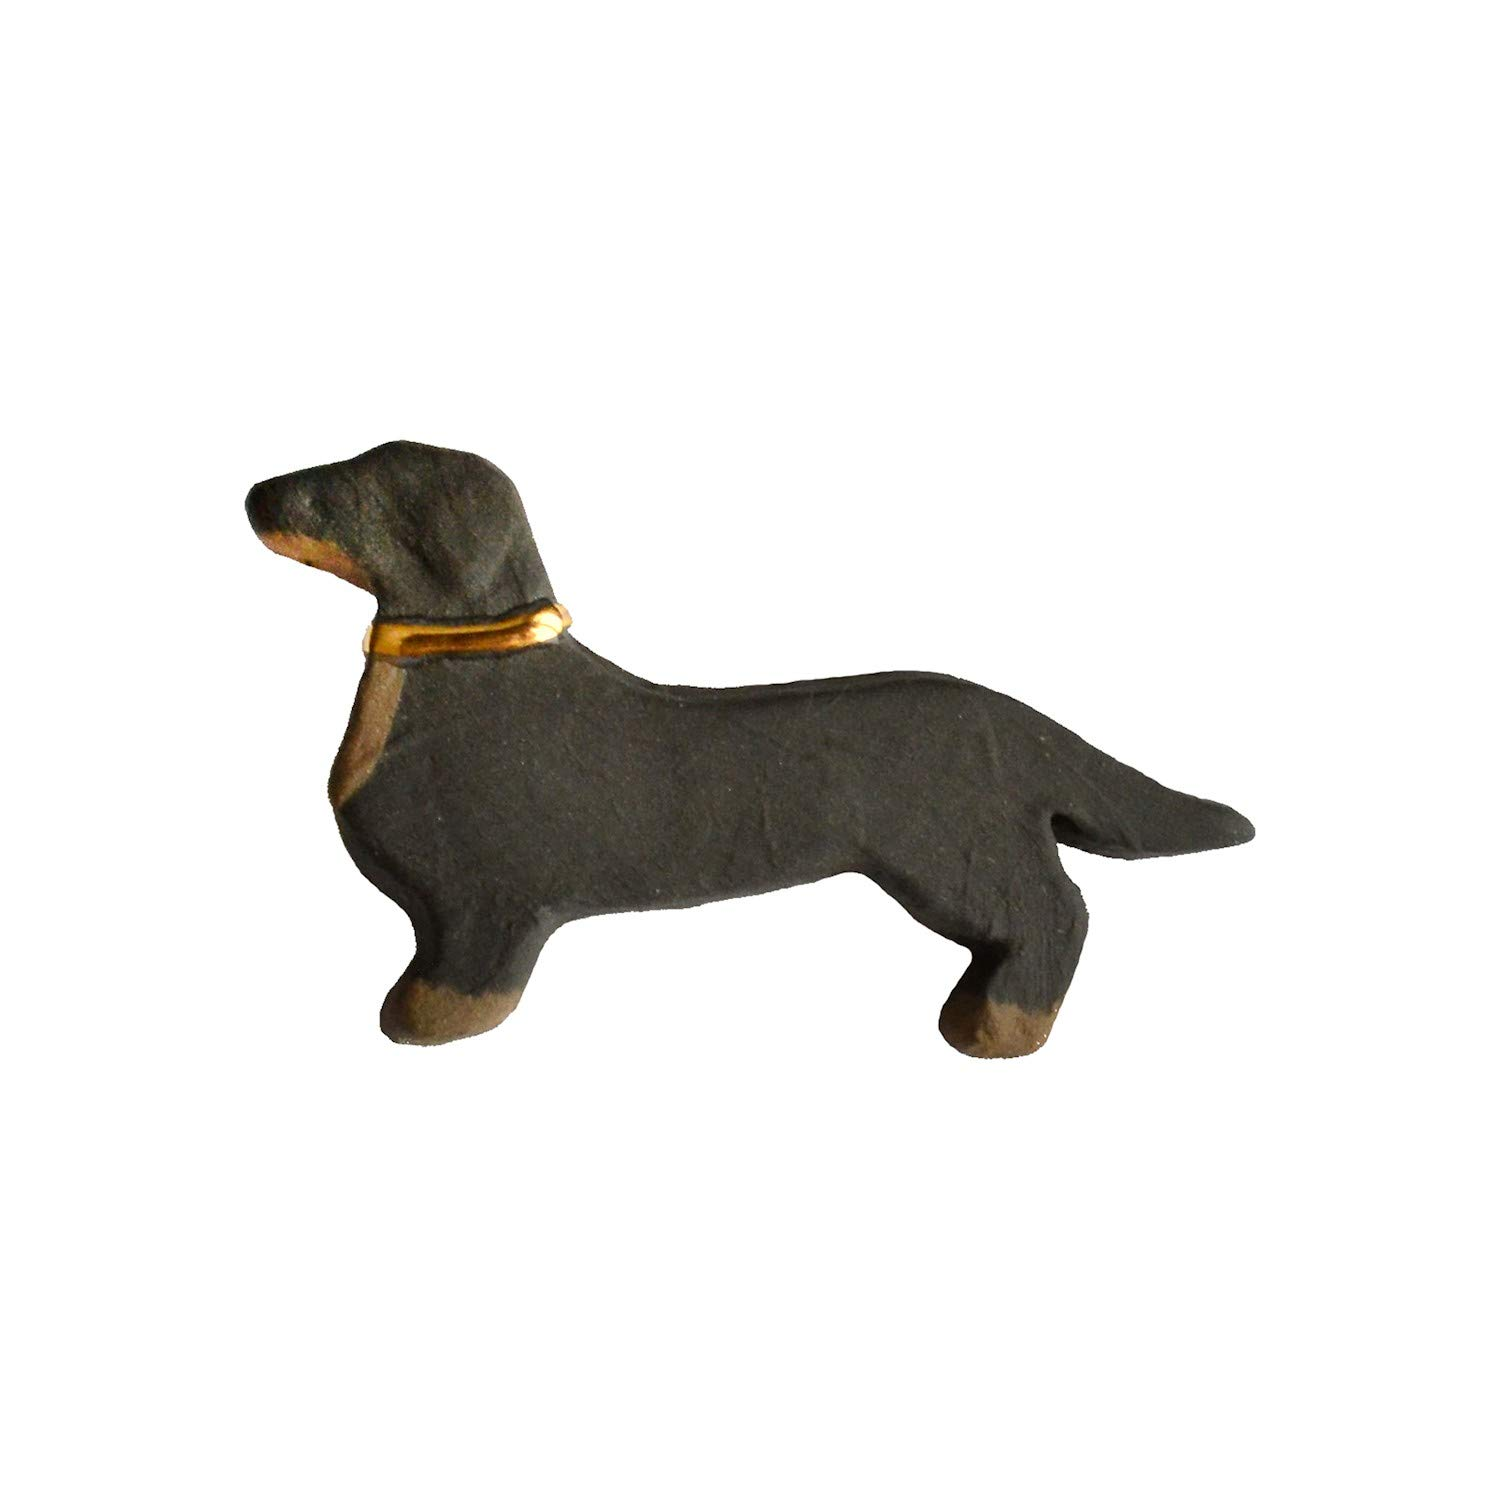 FLORIANA Women's Ceramic Dachshund Weiner Dog Brooch - Black with Gold Luster